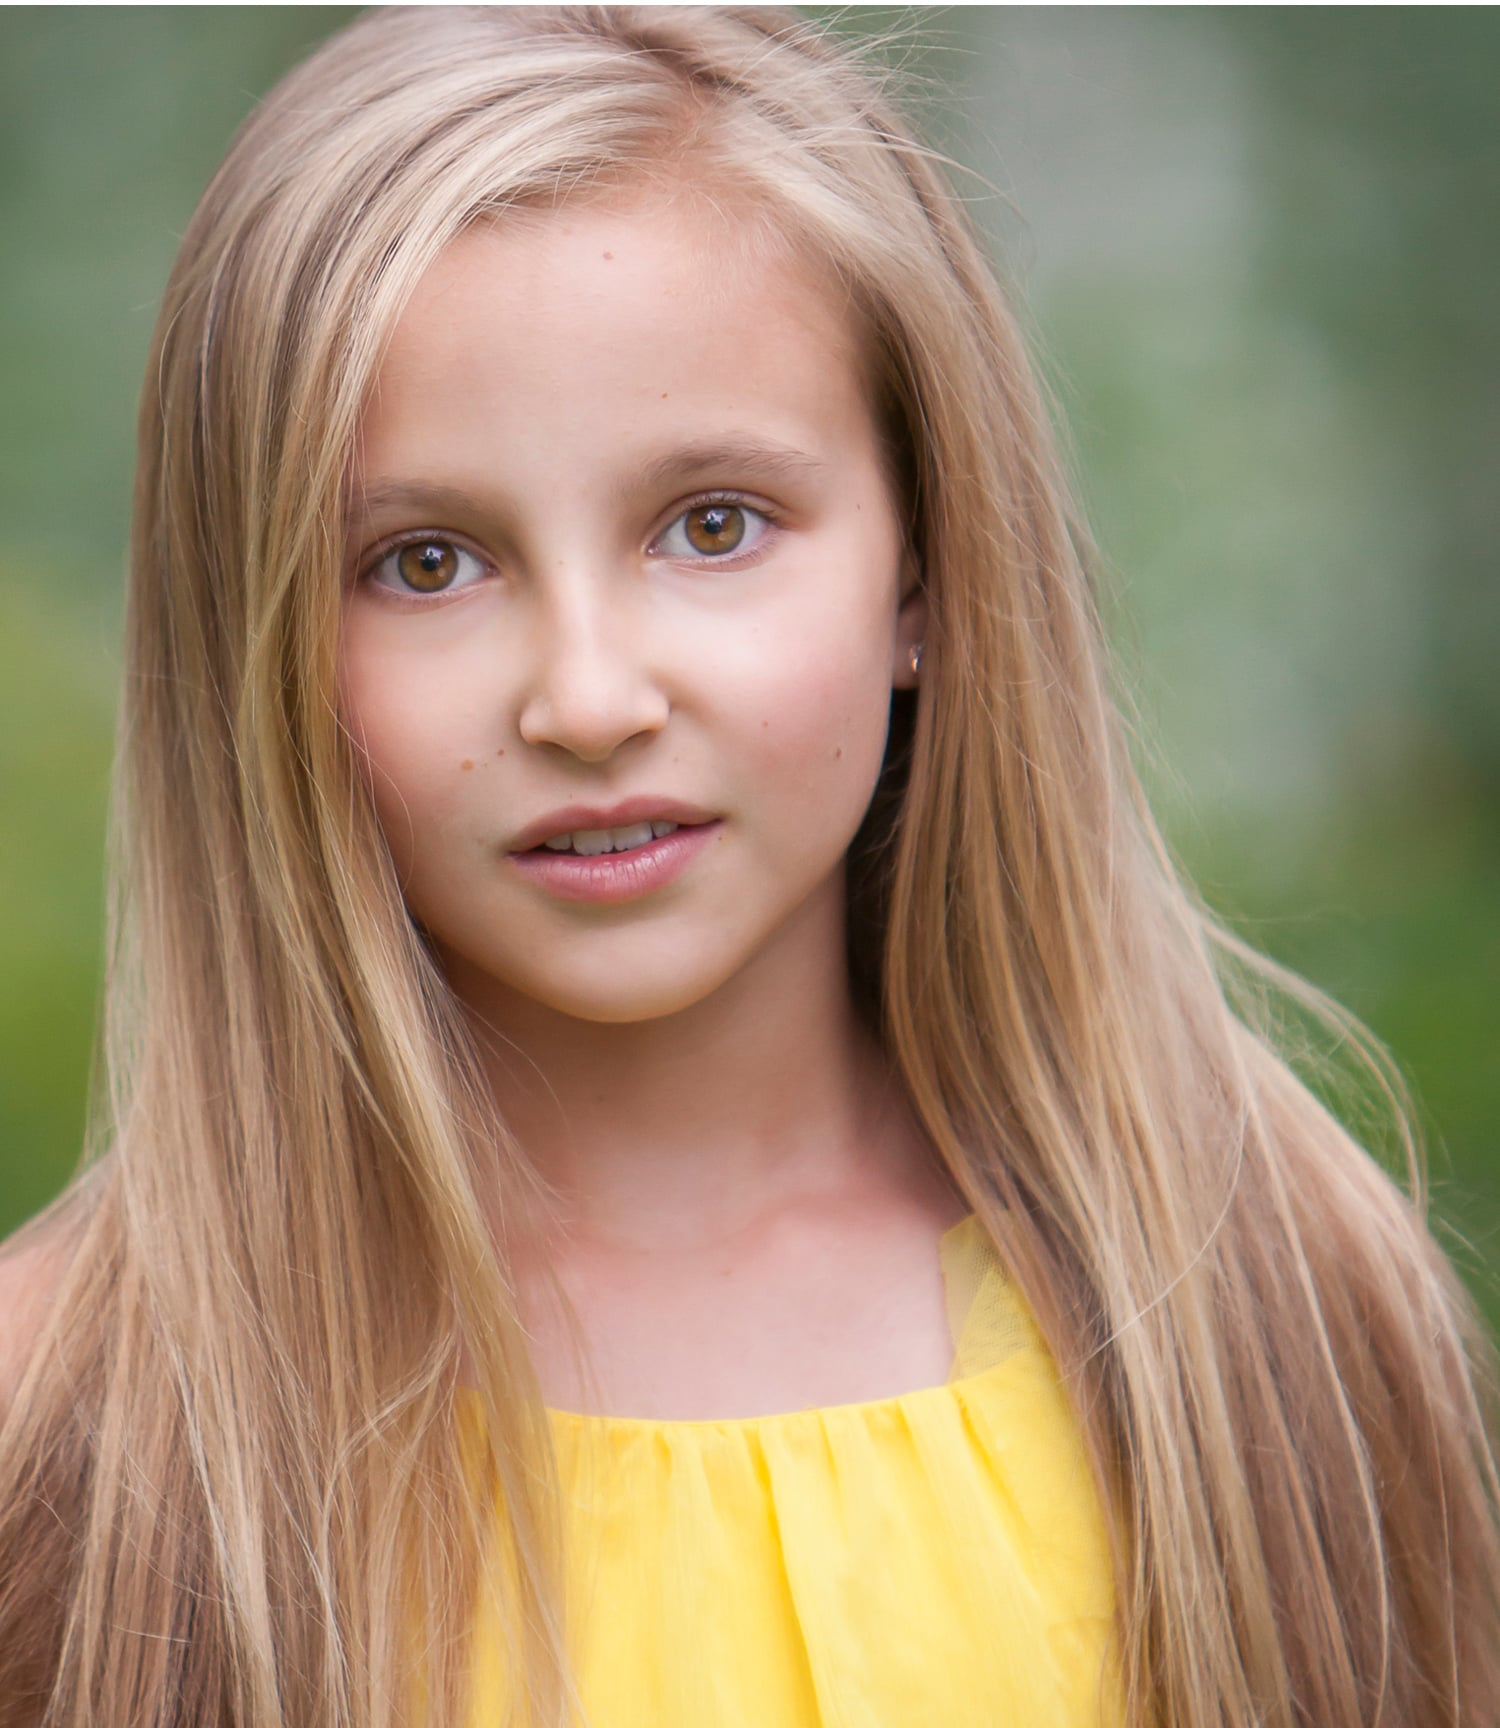 Beautiful blond girl, child actor headshot in natural light, by Denver photographer Jennifer Koskinen | Merritt Portrait Studio